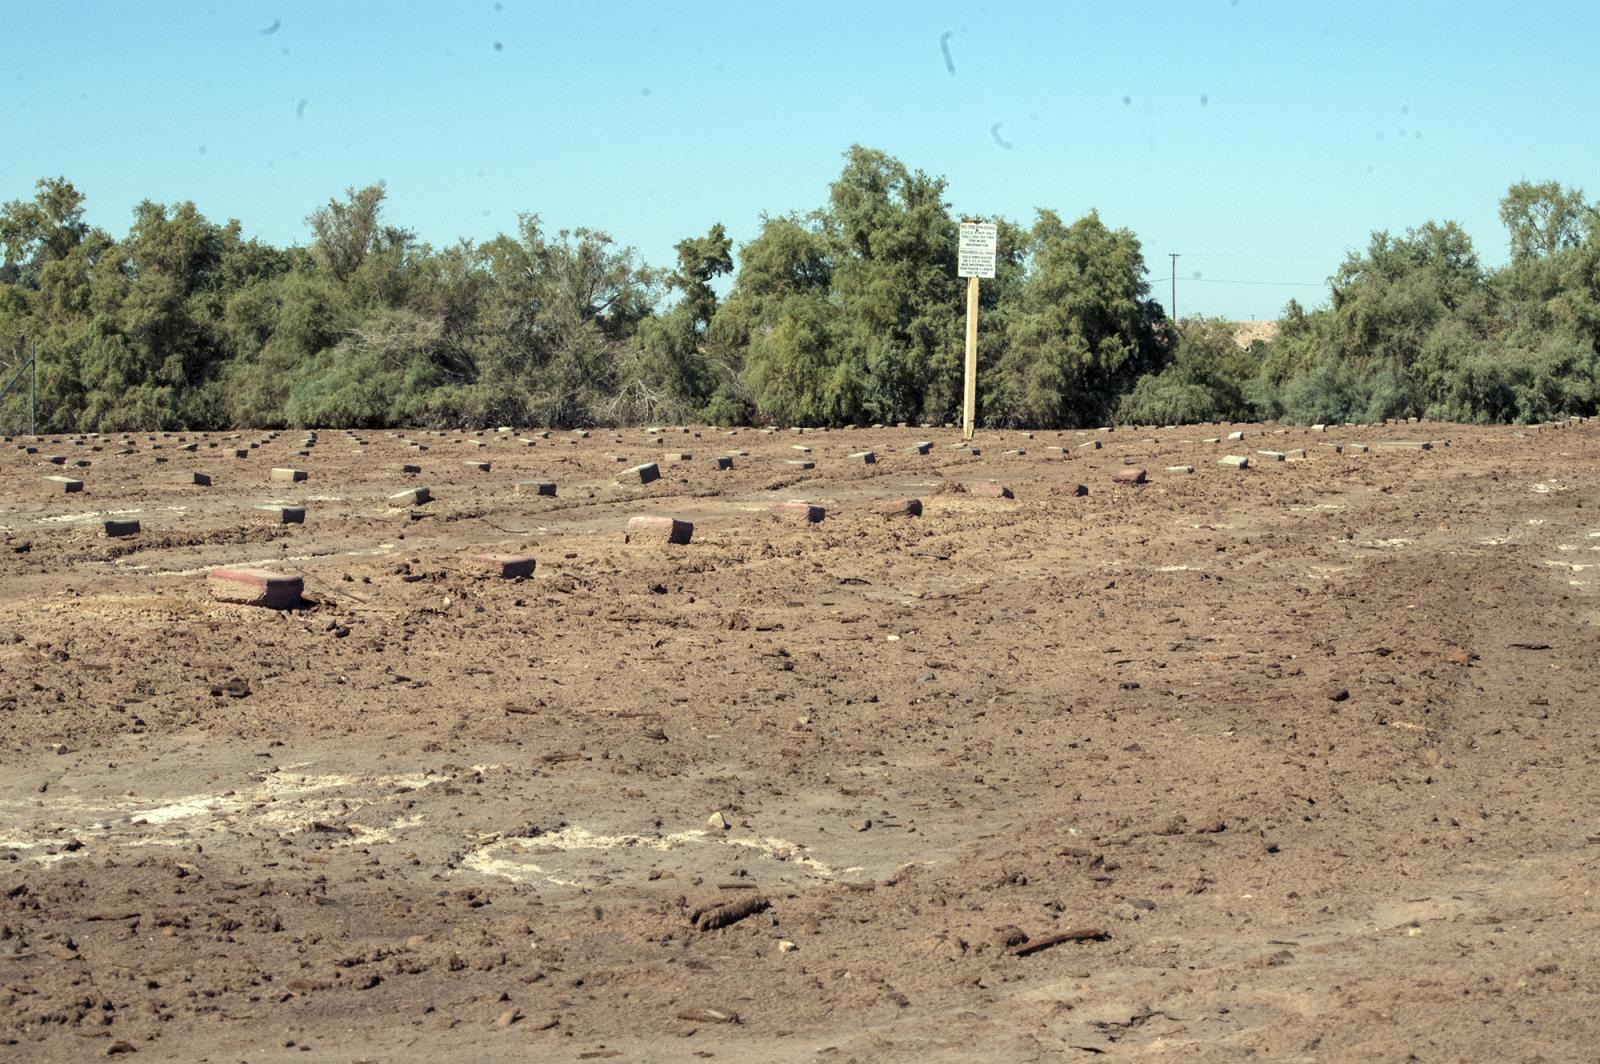 Photography image - Loading Cemetery_where_mass_unmarked_graves_from_migrants_who_perished.jpg